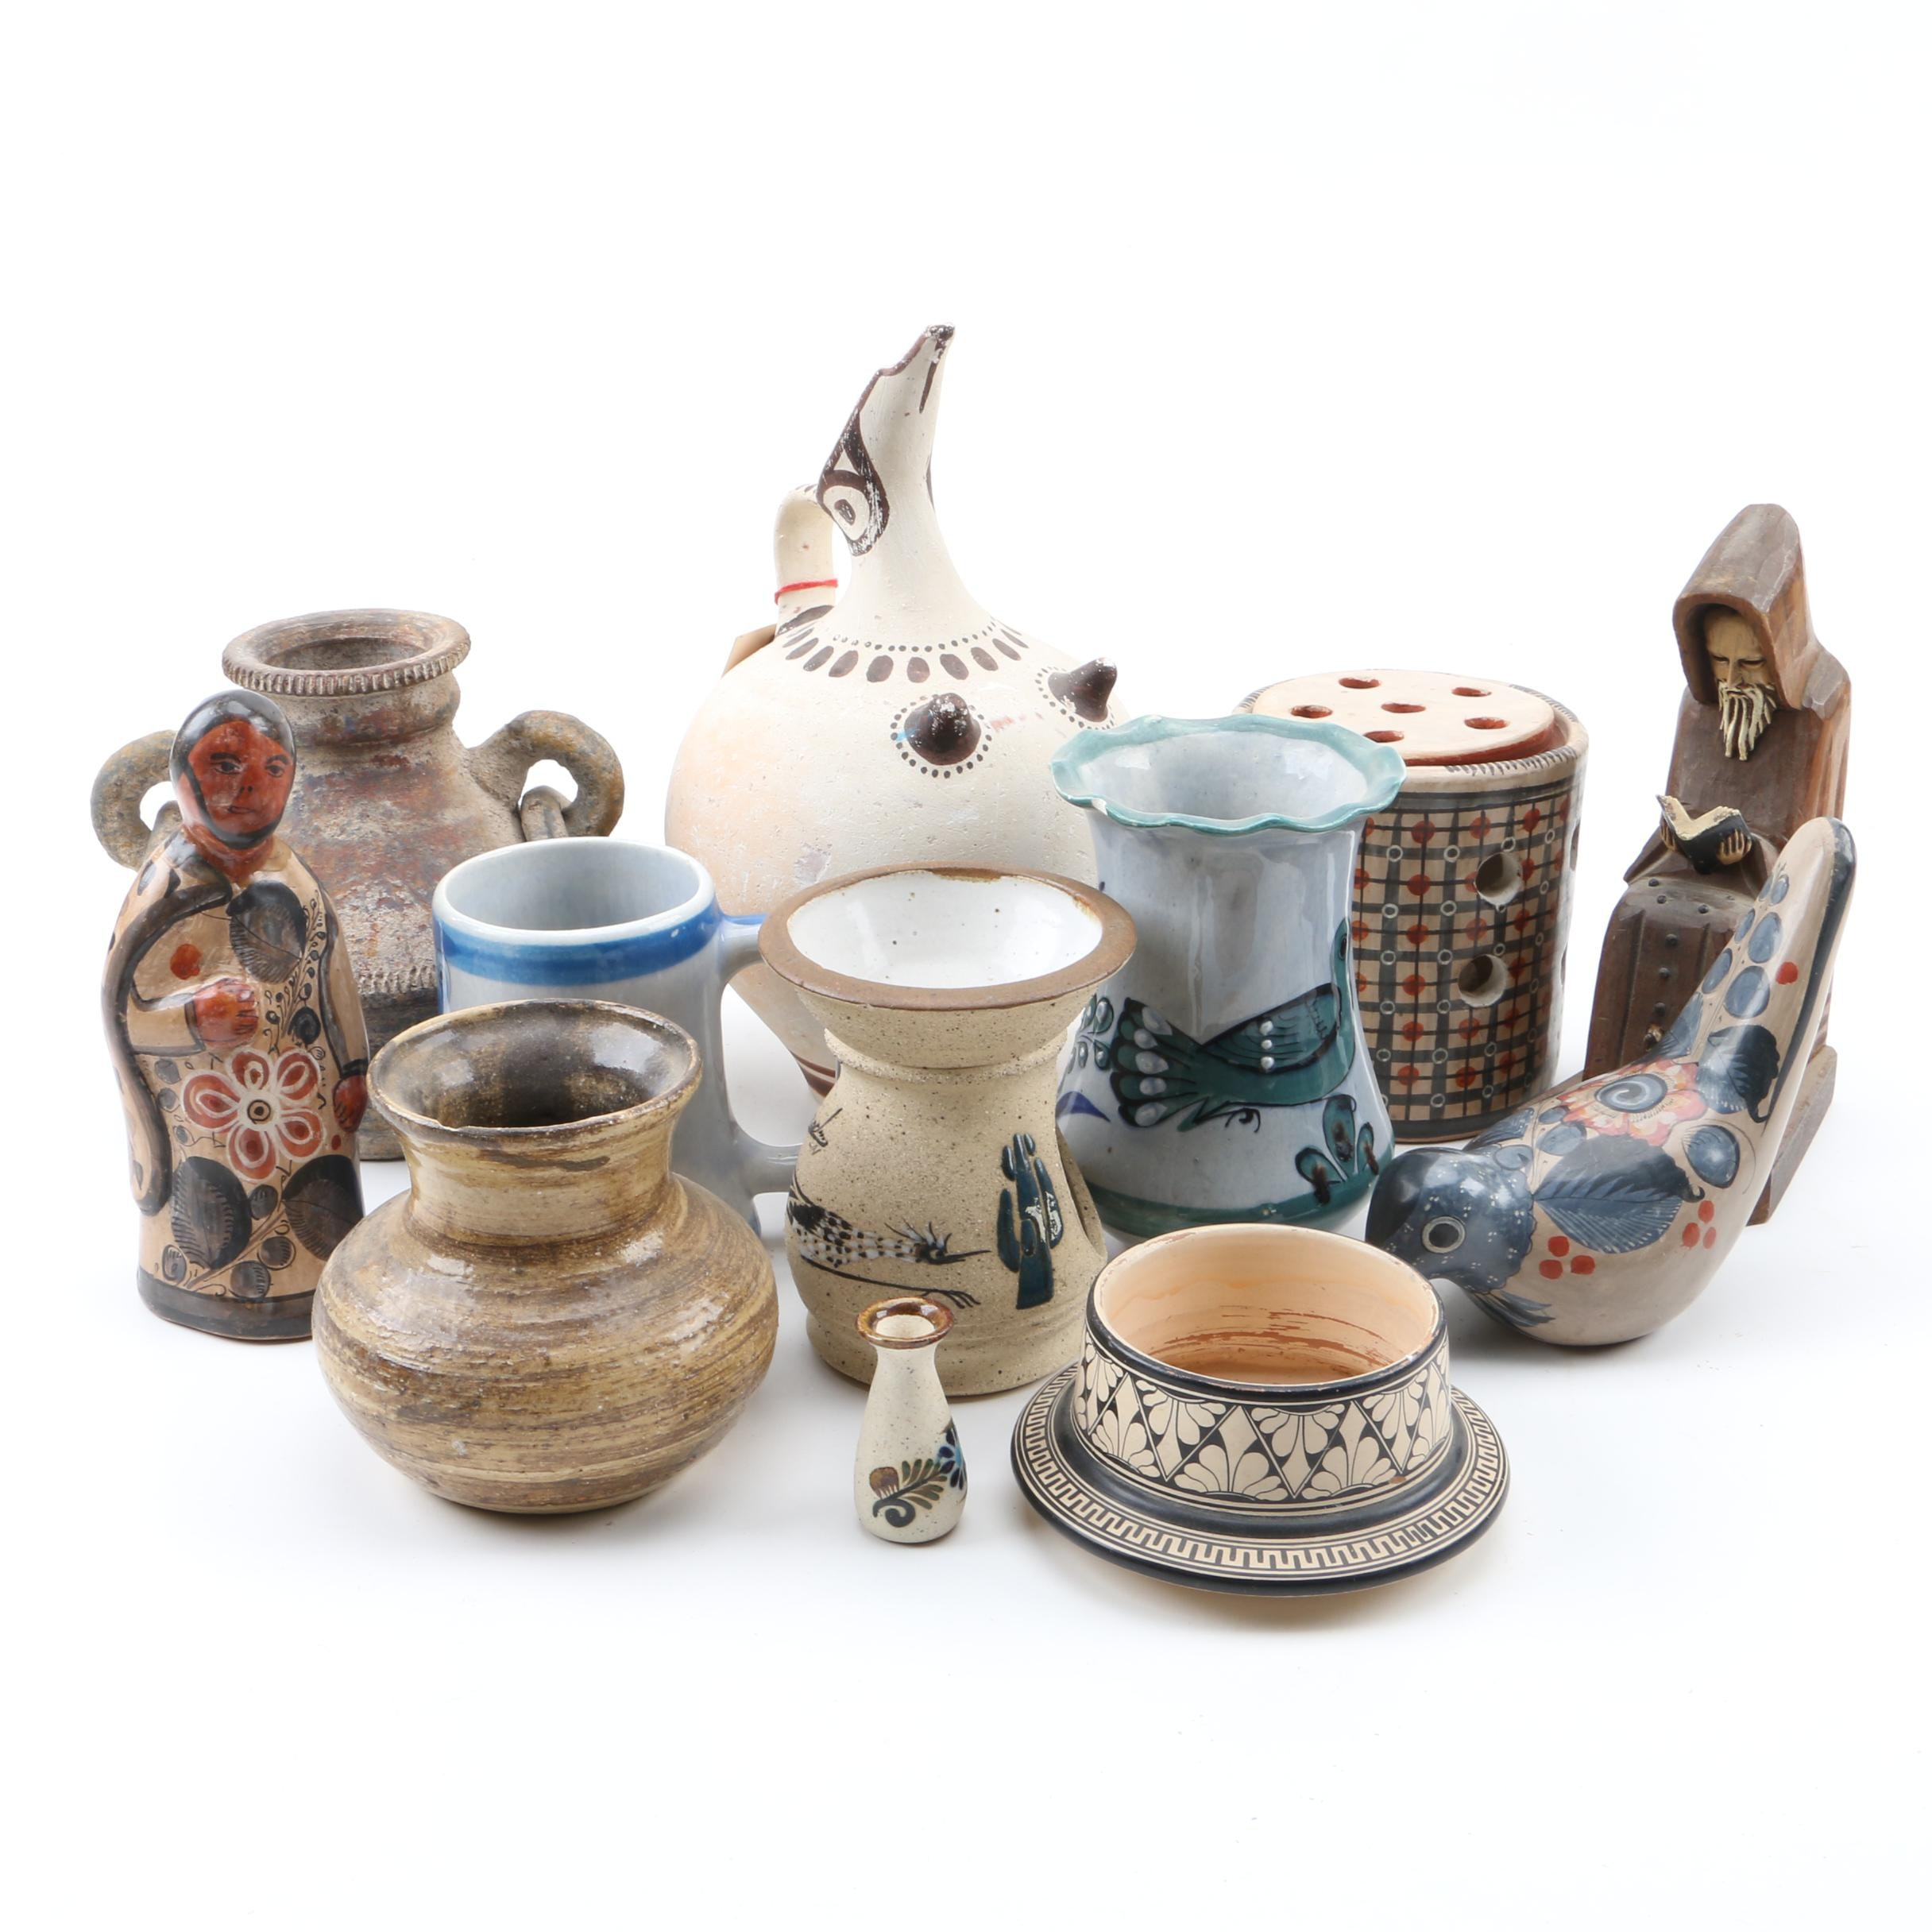 Mexican and Greek Style Pottery Vases and Vessels